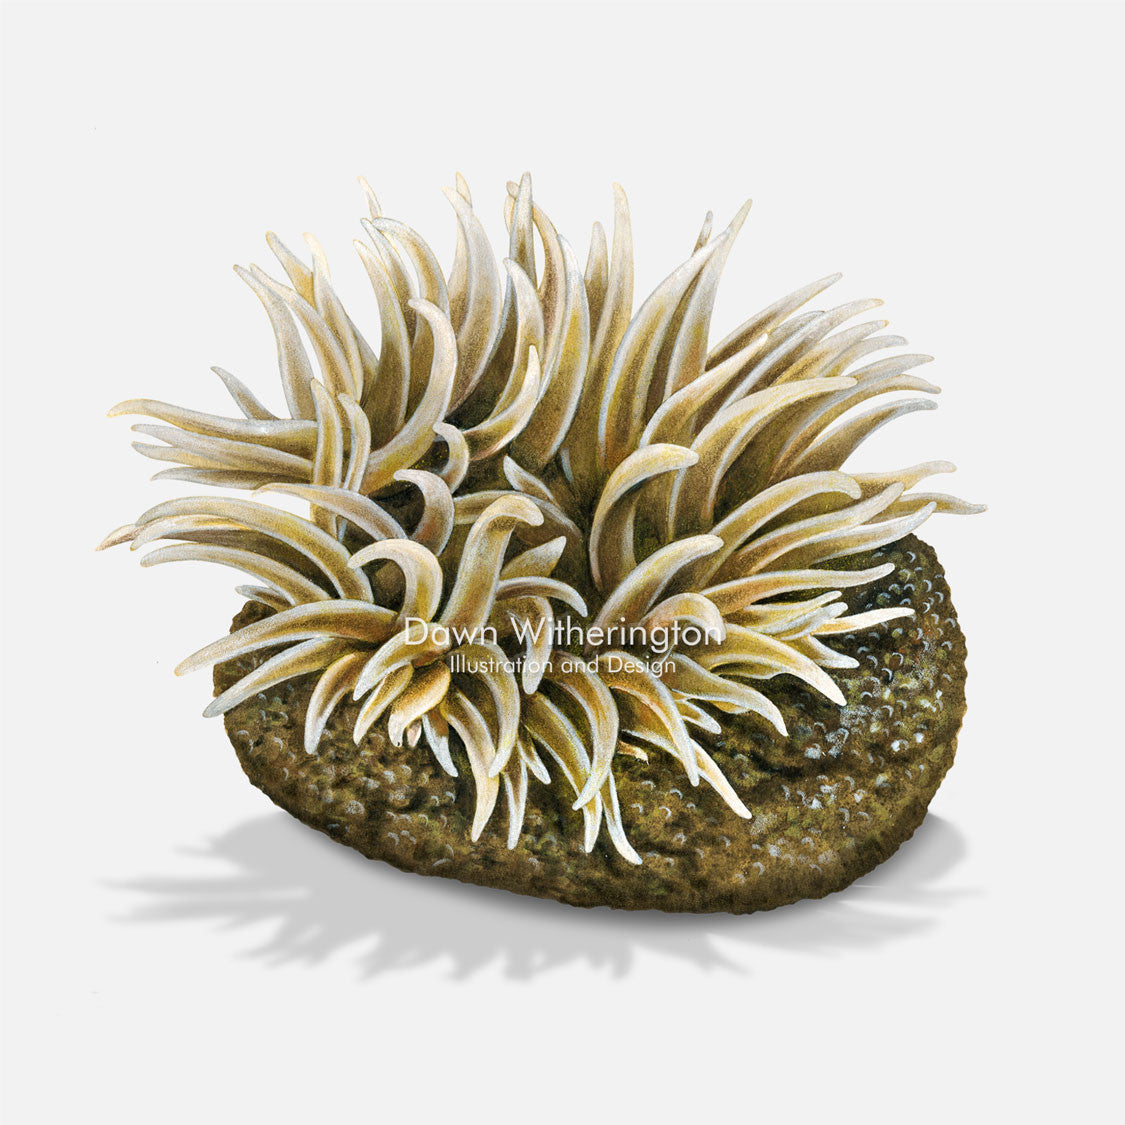 This beautiful illustration of a gray warty anemone, Anthopleura krebsi, is accurate in detail.